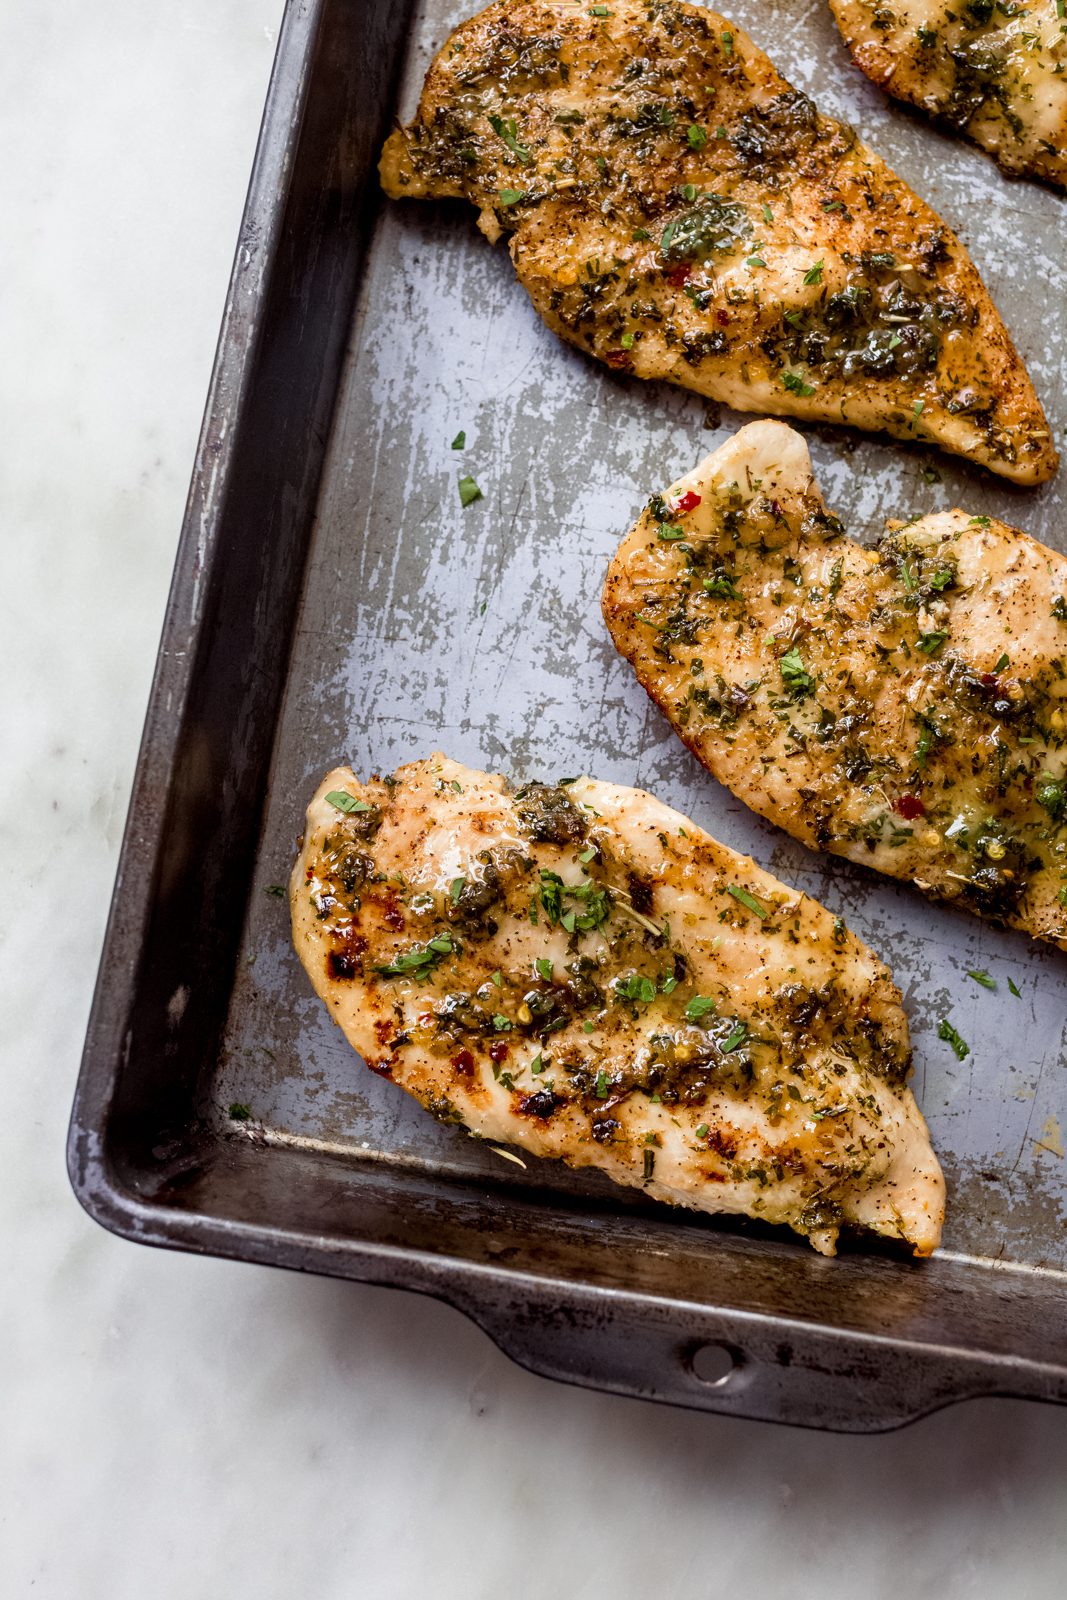 sheet pan with garlic butter baked chicken breasts